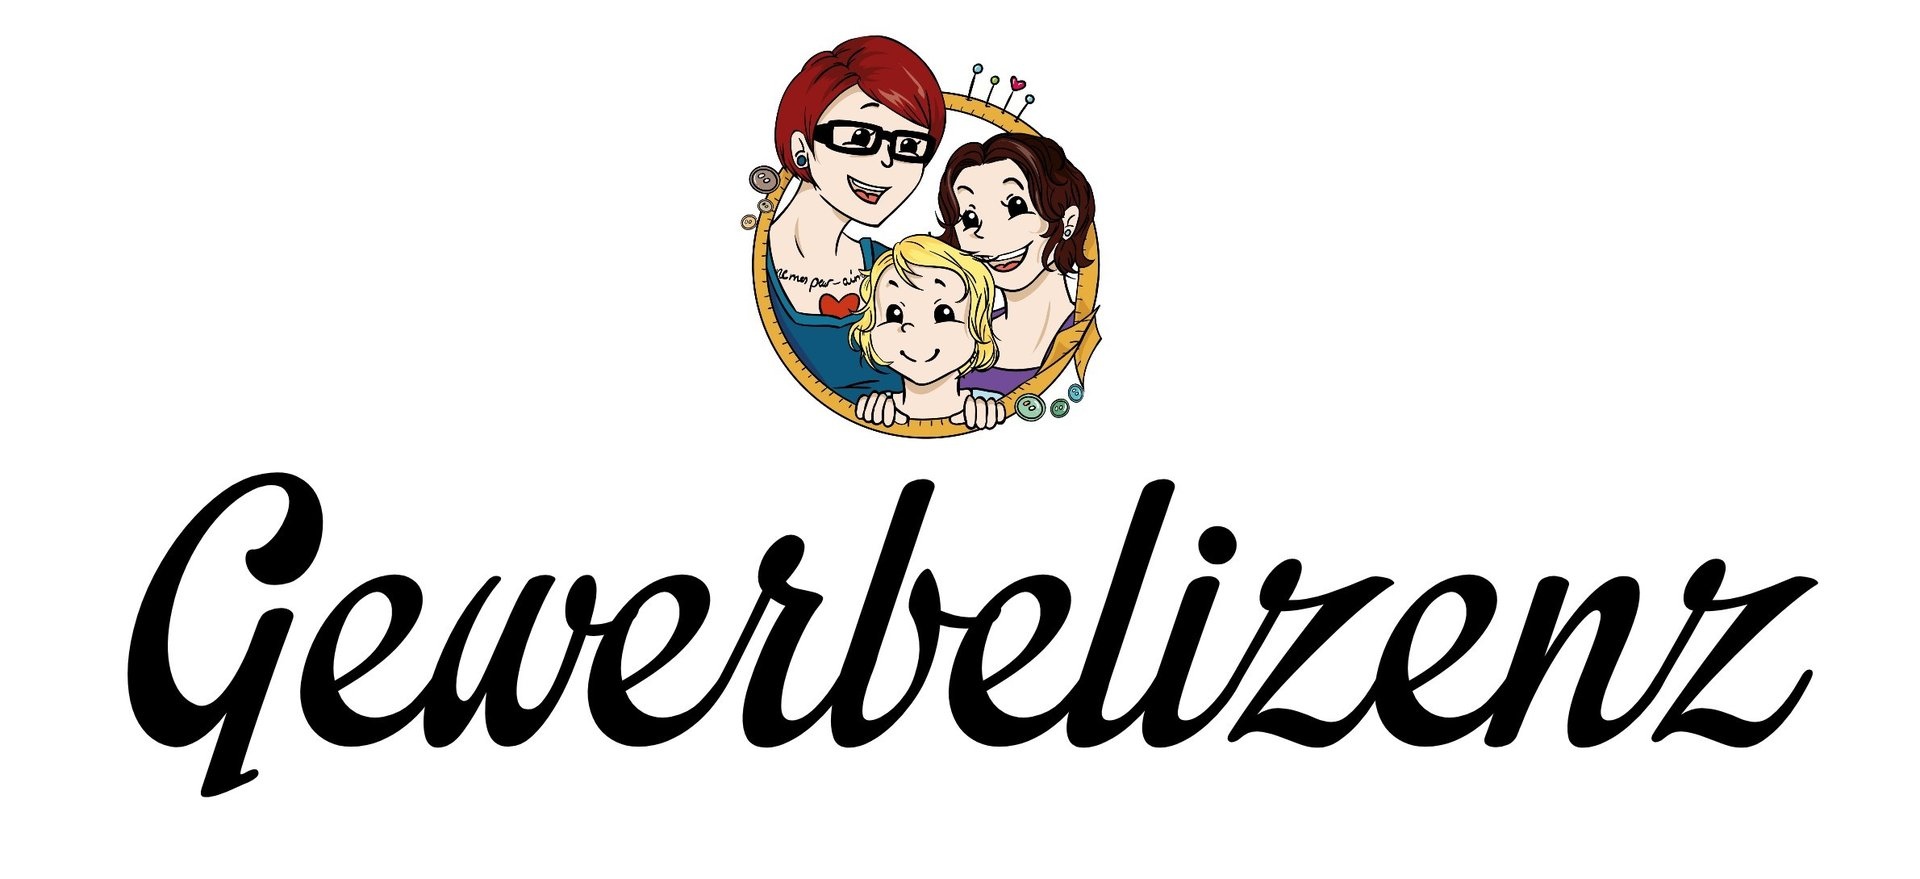 Gewerbelizenz für From heart to needle Ebooks/Freebooks